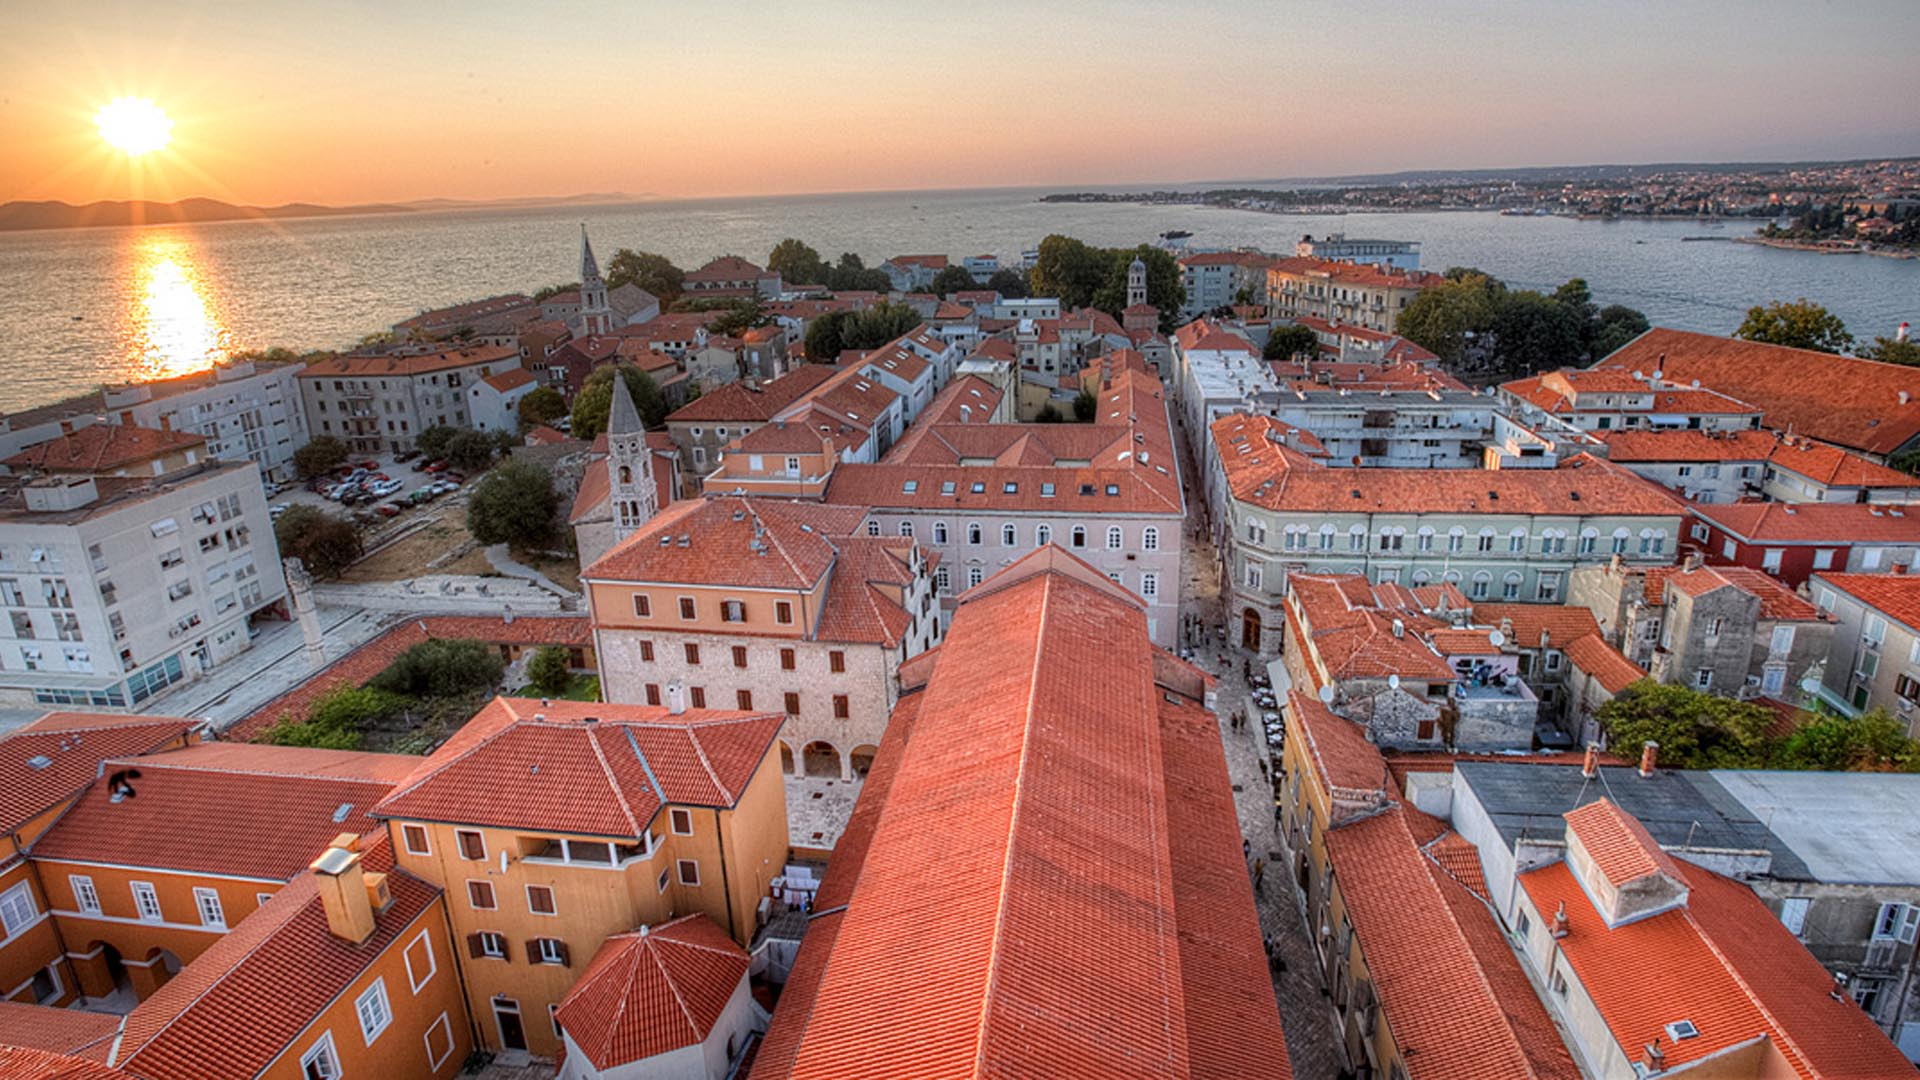 Walking Tours Croatia | Zadar City Tour| Zadar Walking Tour | Get Expert Guides in Dalmatia | Visit & Enjoy Croatia | Best Walking Tour in Zadar Croatia| Sightseeing |